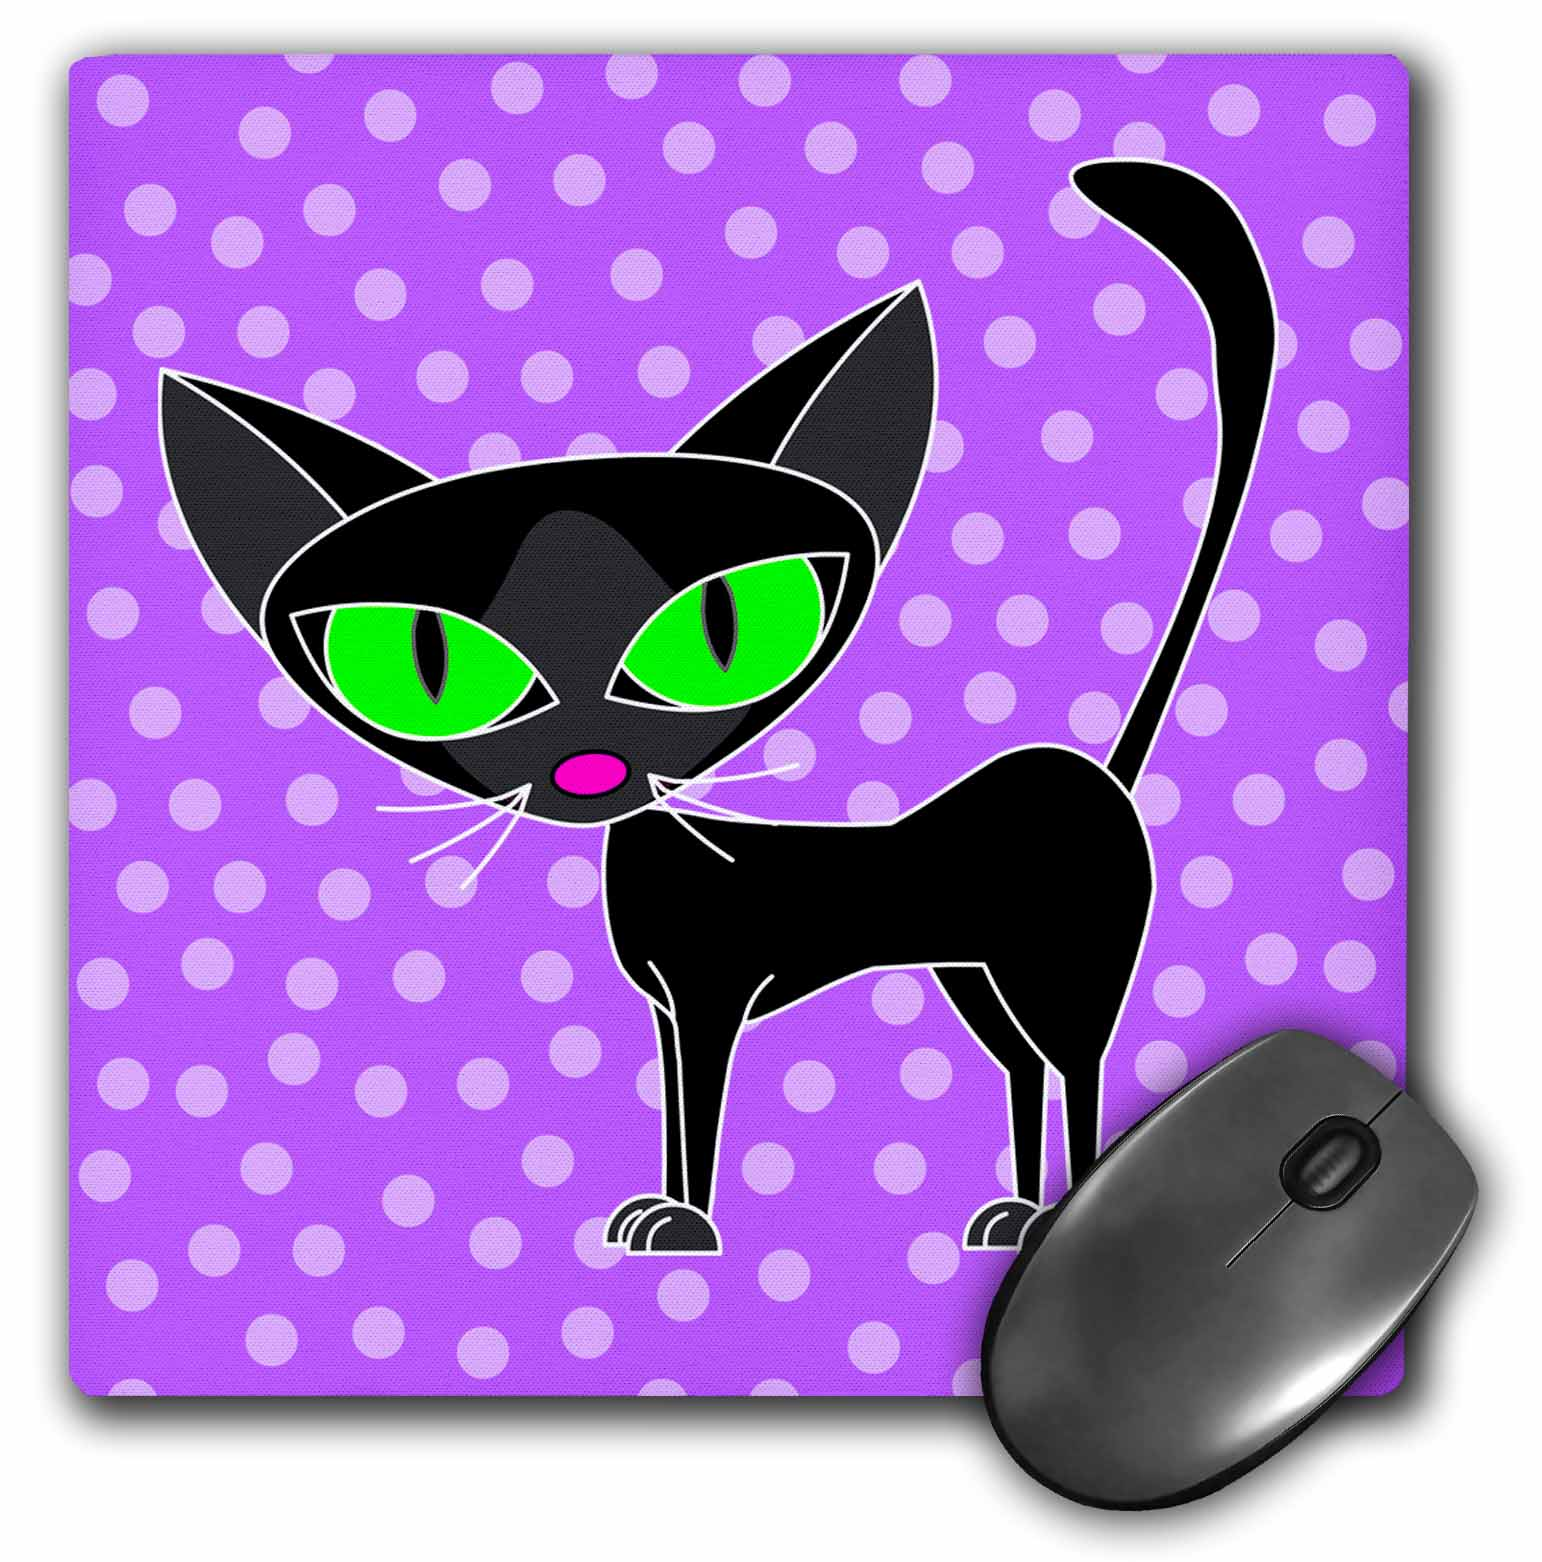 3dRose Fancy Feline Black Cat Design in Purple, Mouse Pad, 8 by 8 inches